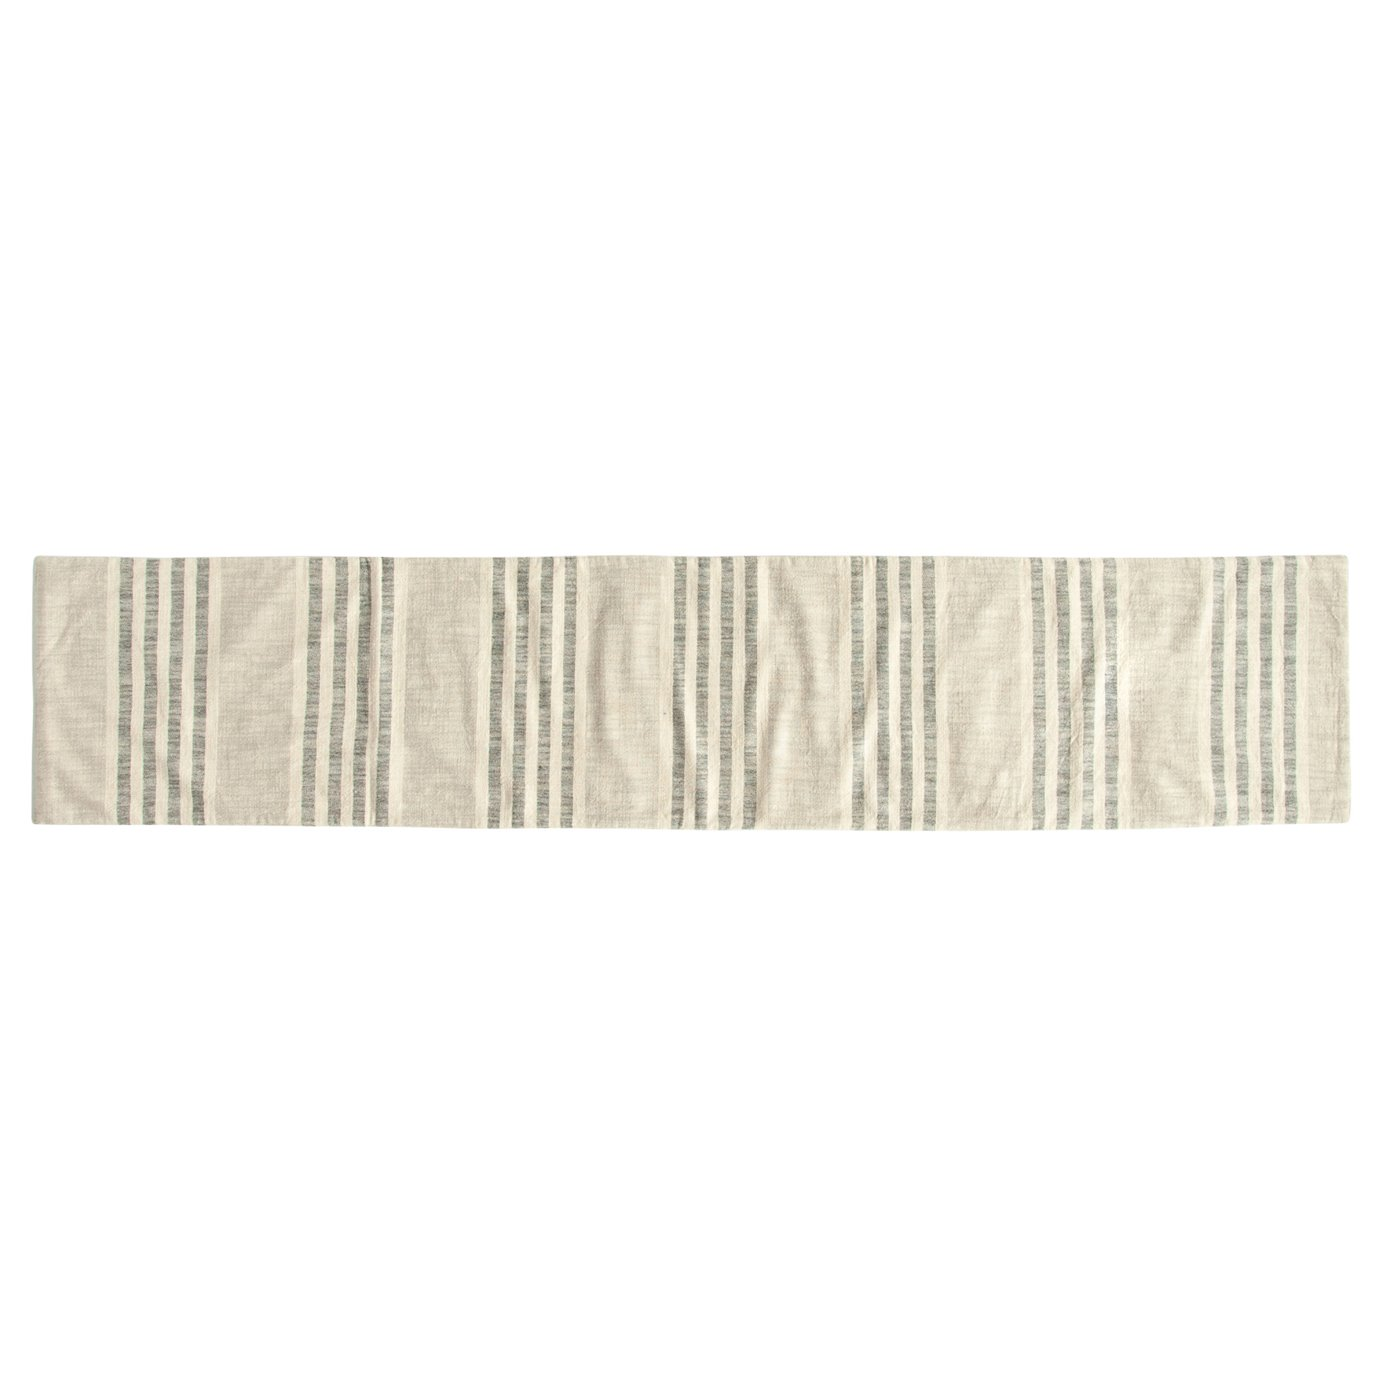 Grey Striped Cotton Woven Table Runner